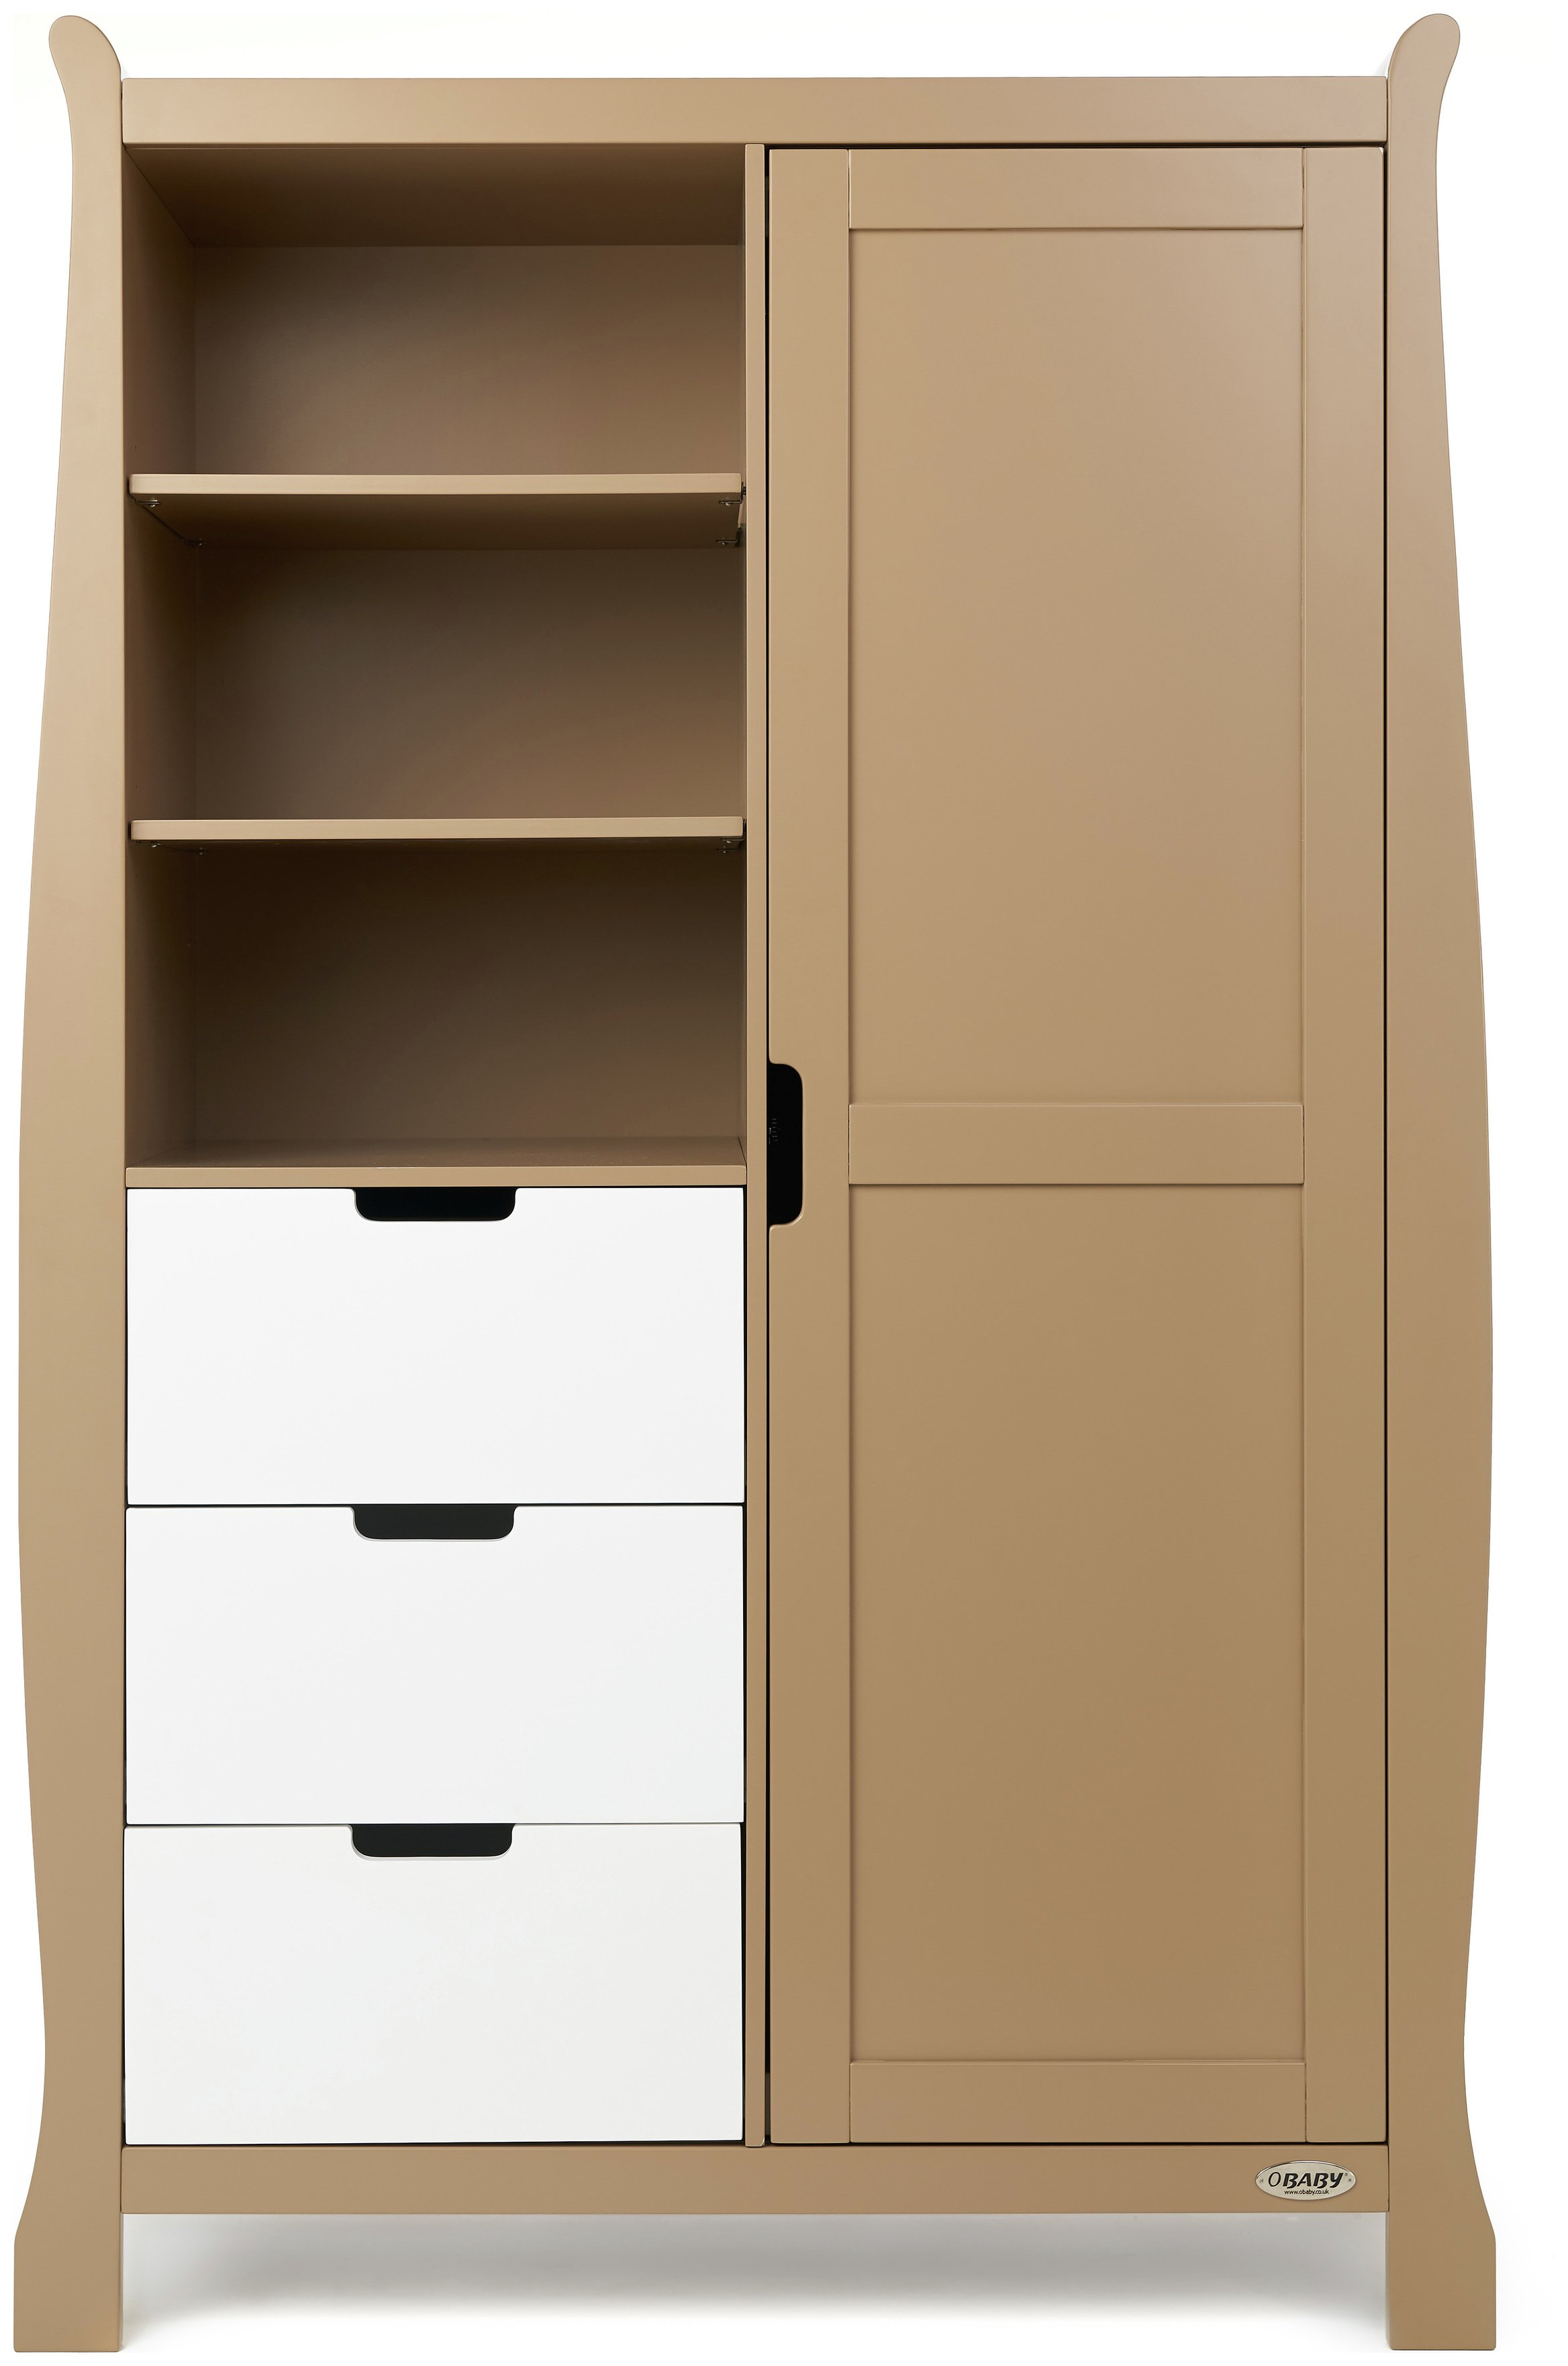 Image of Obaby Stamford Retro Wardrobe - Iced Coffee with White